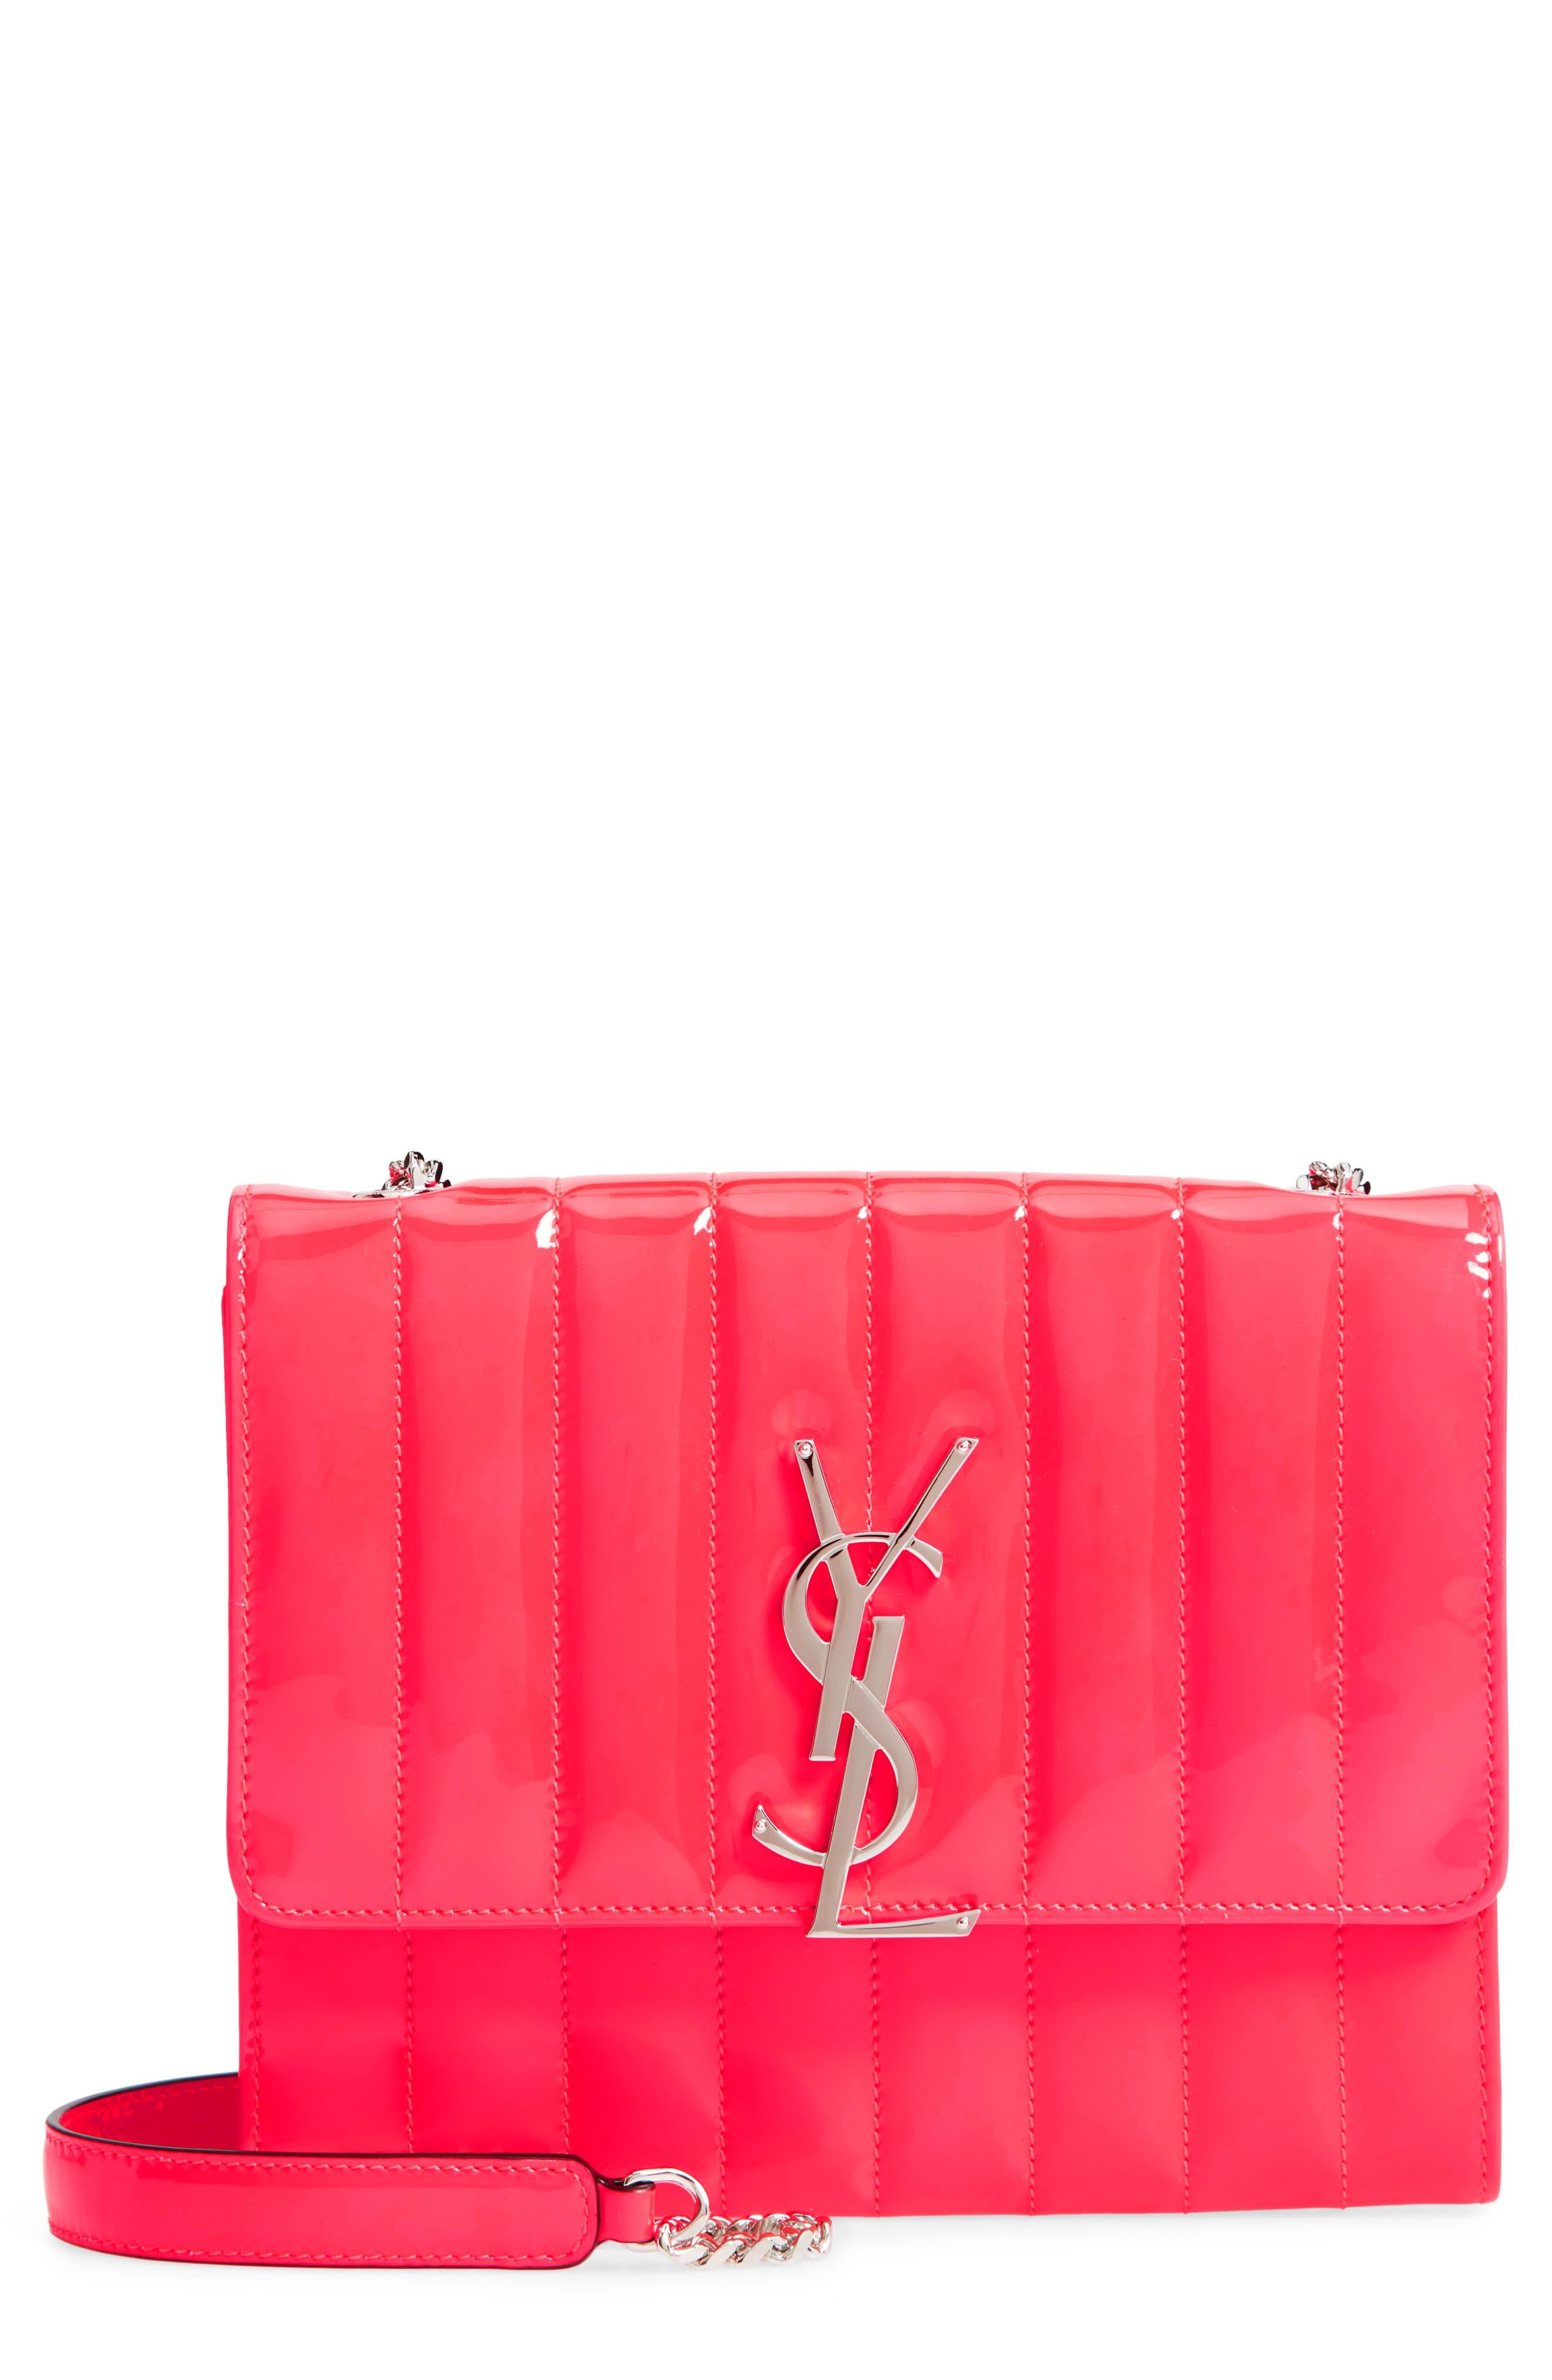 67e76382eee Saint Laurent Vicky Patent Leather Wallet On A Chain - in Pink - Lyst